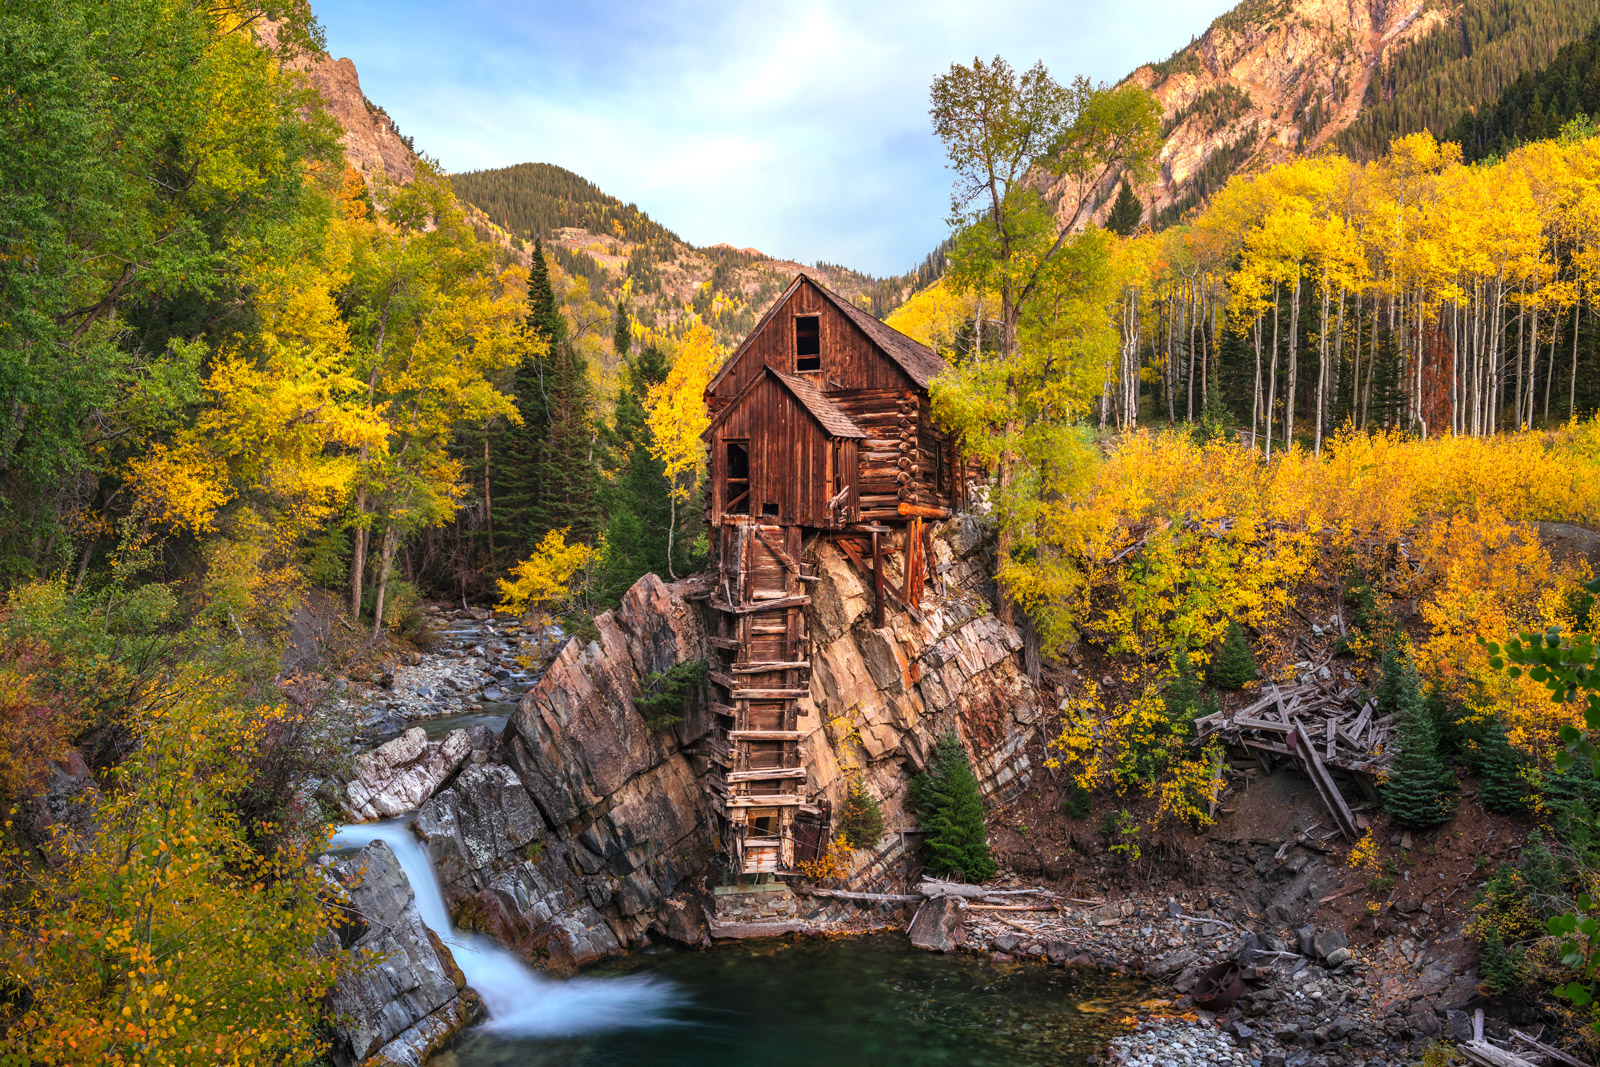 Colorado, Crystal Mill, Limited Edition, Fine Art, Landscape, Photograph, Print, Southwest Colorado, Fall Color, photo